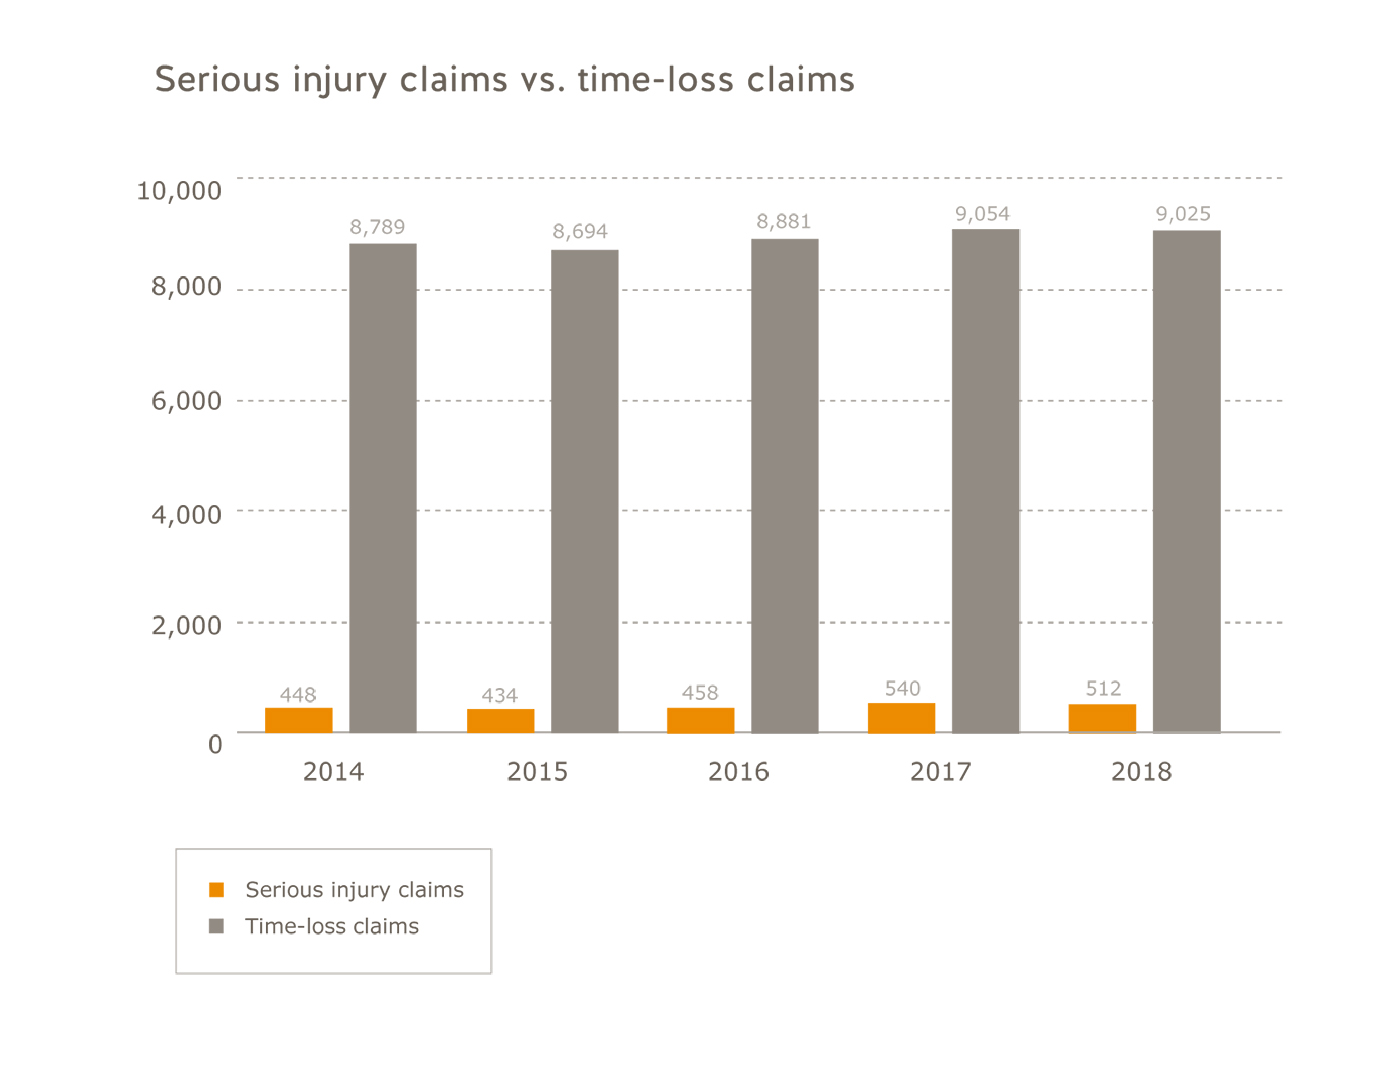 Health care sector serious injury claims vs. time-loss claims for 2014 to 2018. Serious injury claims: 2014=448; 2015=434; 2016=458; 2017=540; 2018=512. Time-loss claims: 2014=8,789; 2015=8,694; 2016=8,881; 2017=9,054; 2018=9,025.